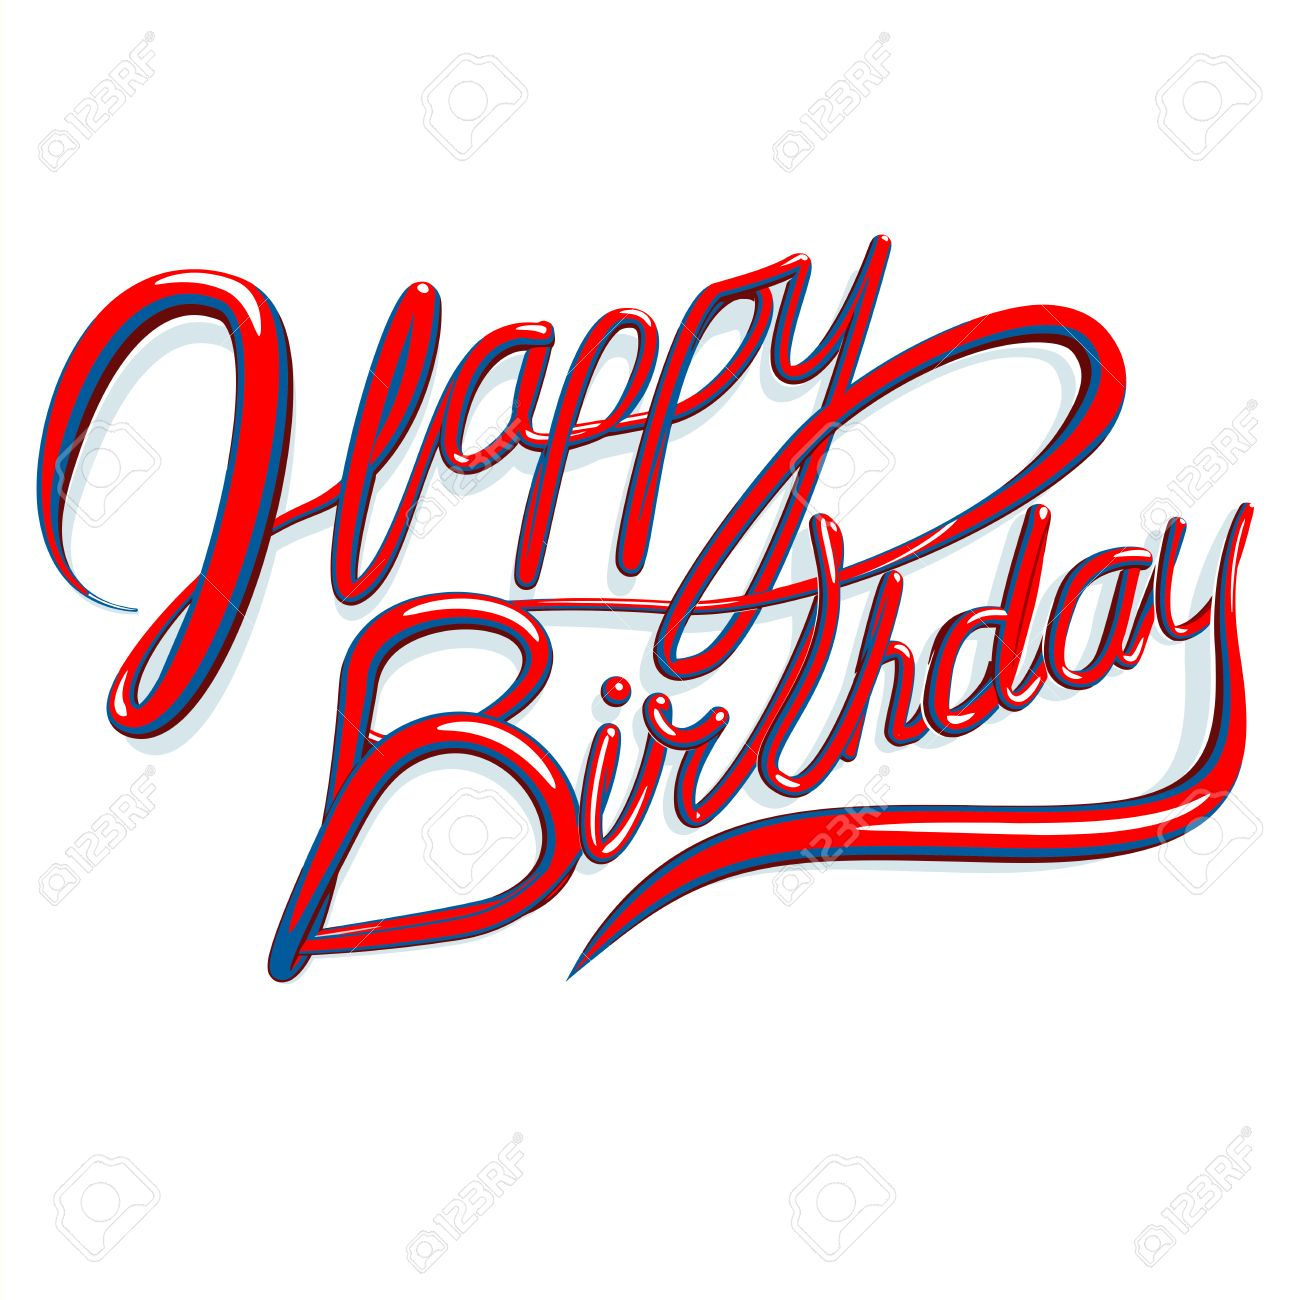 happy birthday in cursive writing ; 50591694-happy-birthday-text-cursive-script-isolated-on-white-background-greeting-card-vector-format-image-